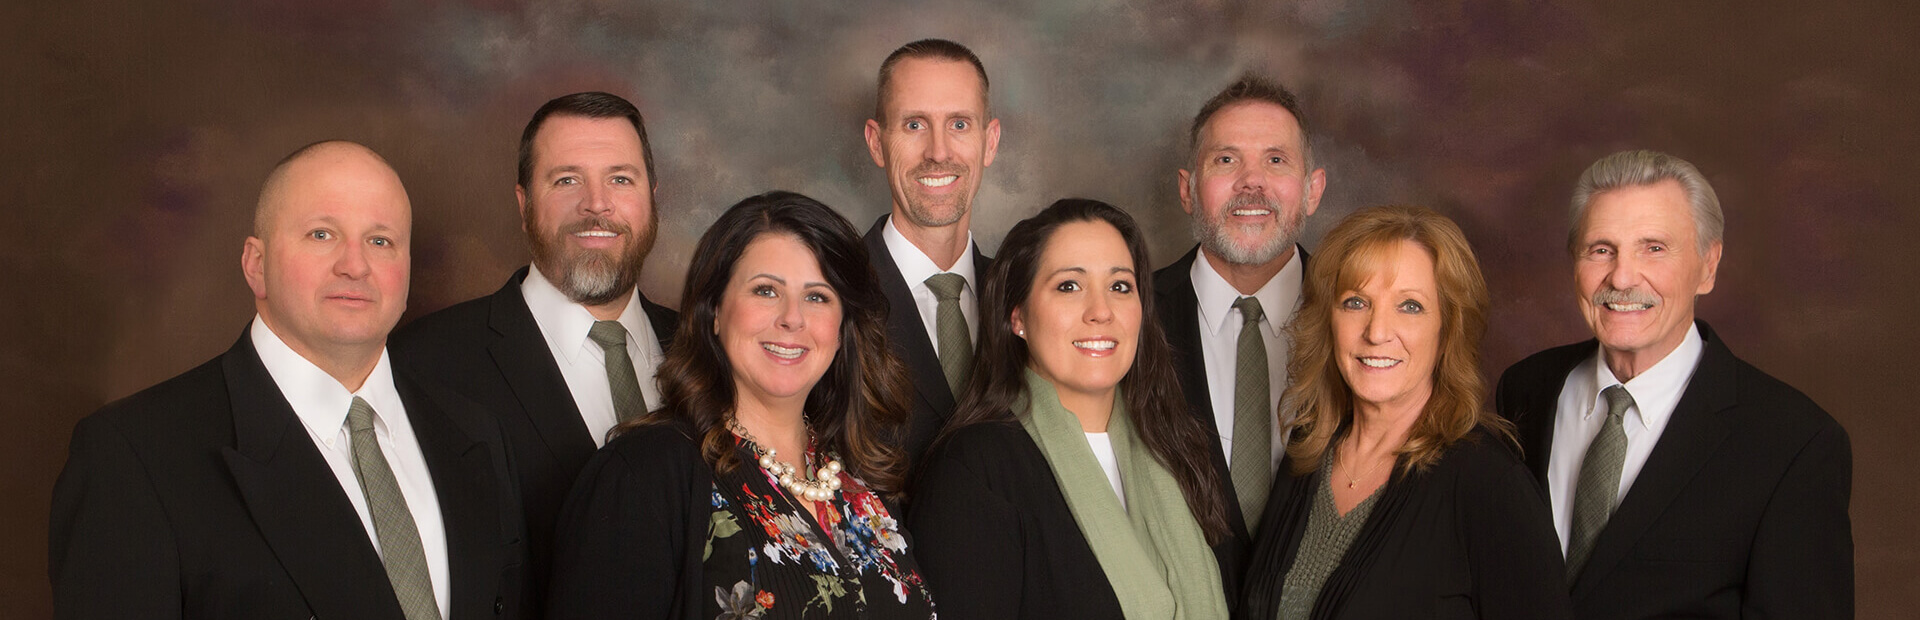 Johnson - Gloschat Funeral Home and Crematory in Kalispell, MT